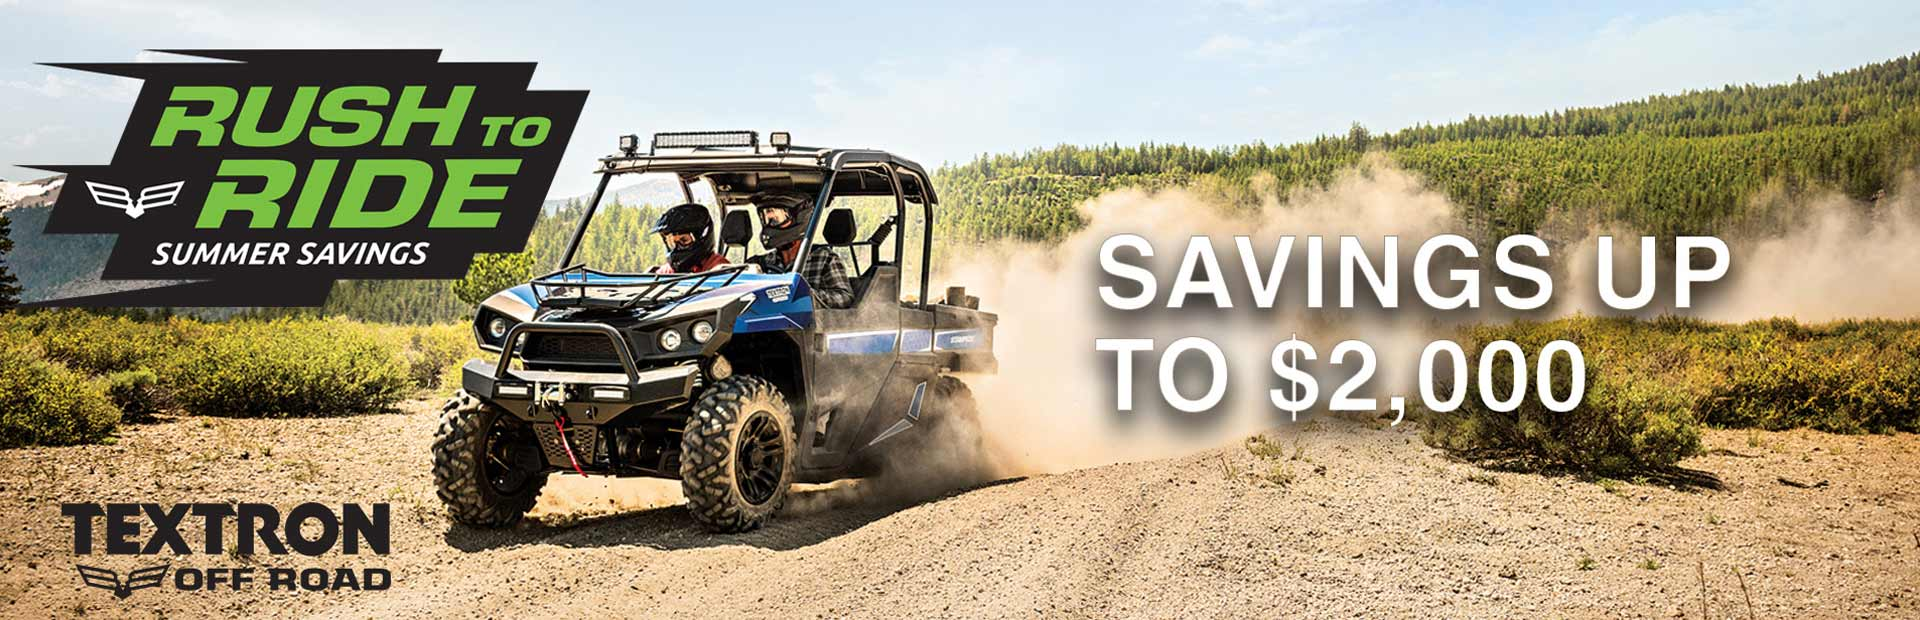 Textron Off Road: Rush to Ride Summer Savings